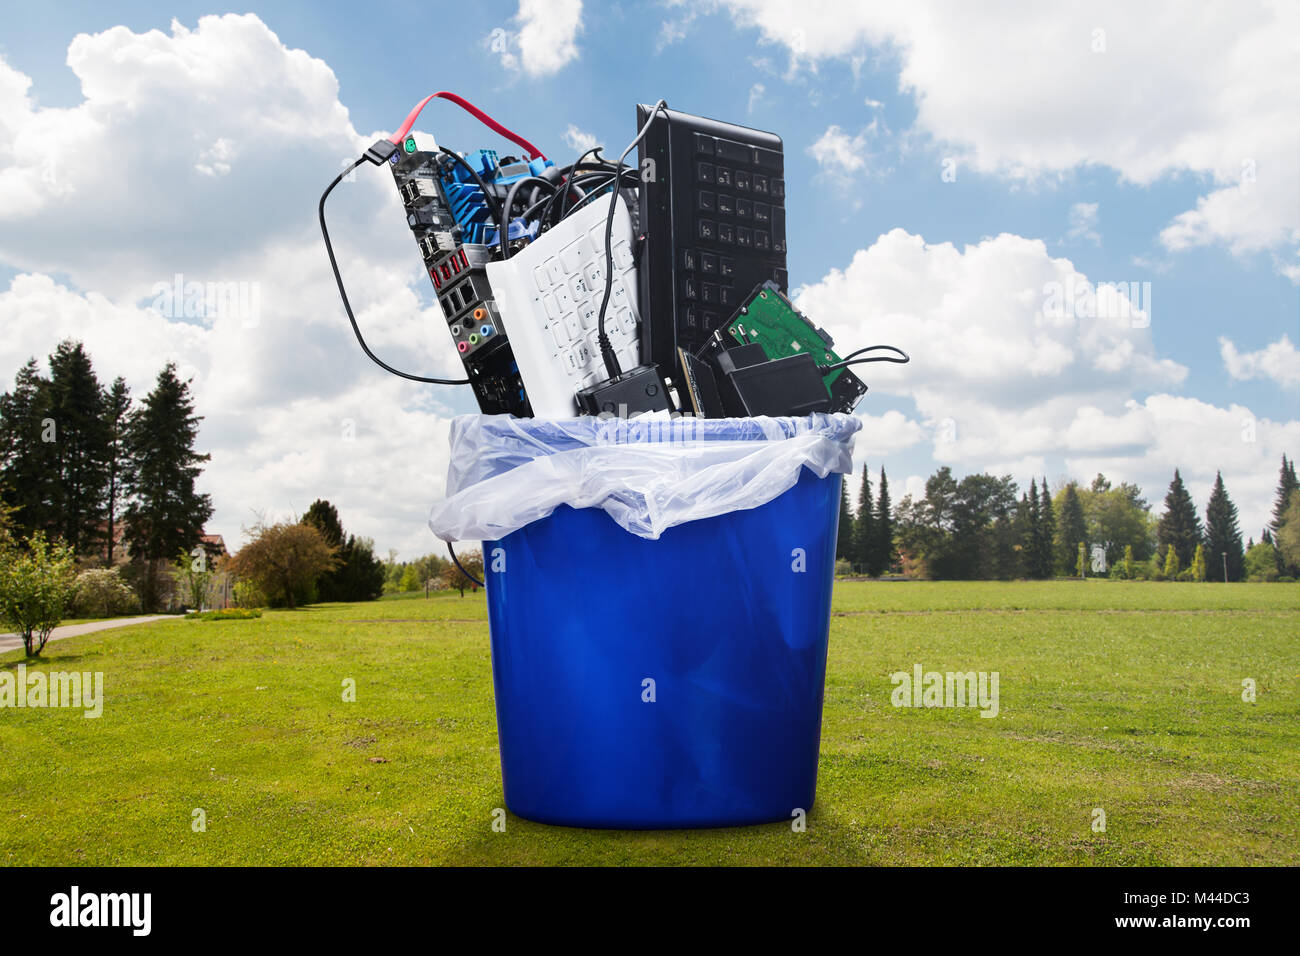 Damaged Hardware Equipment In Blue Dustbin On Lawn - Stock Image